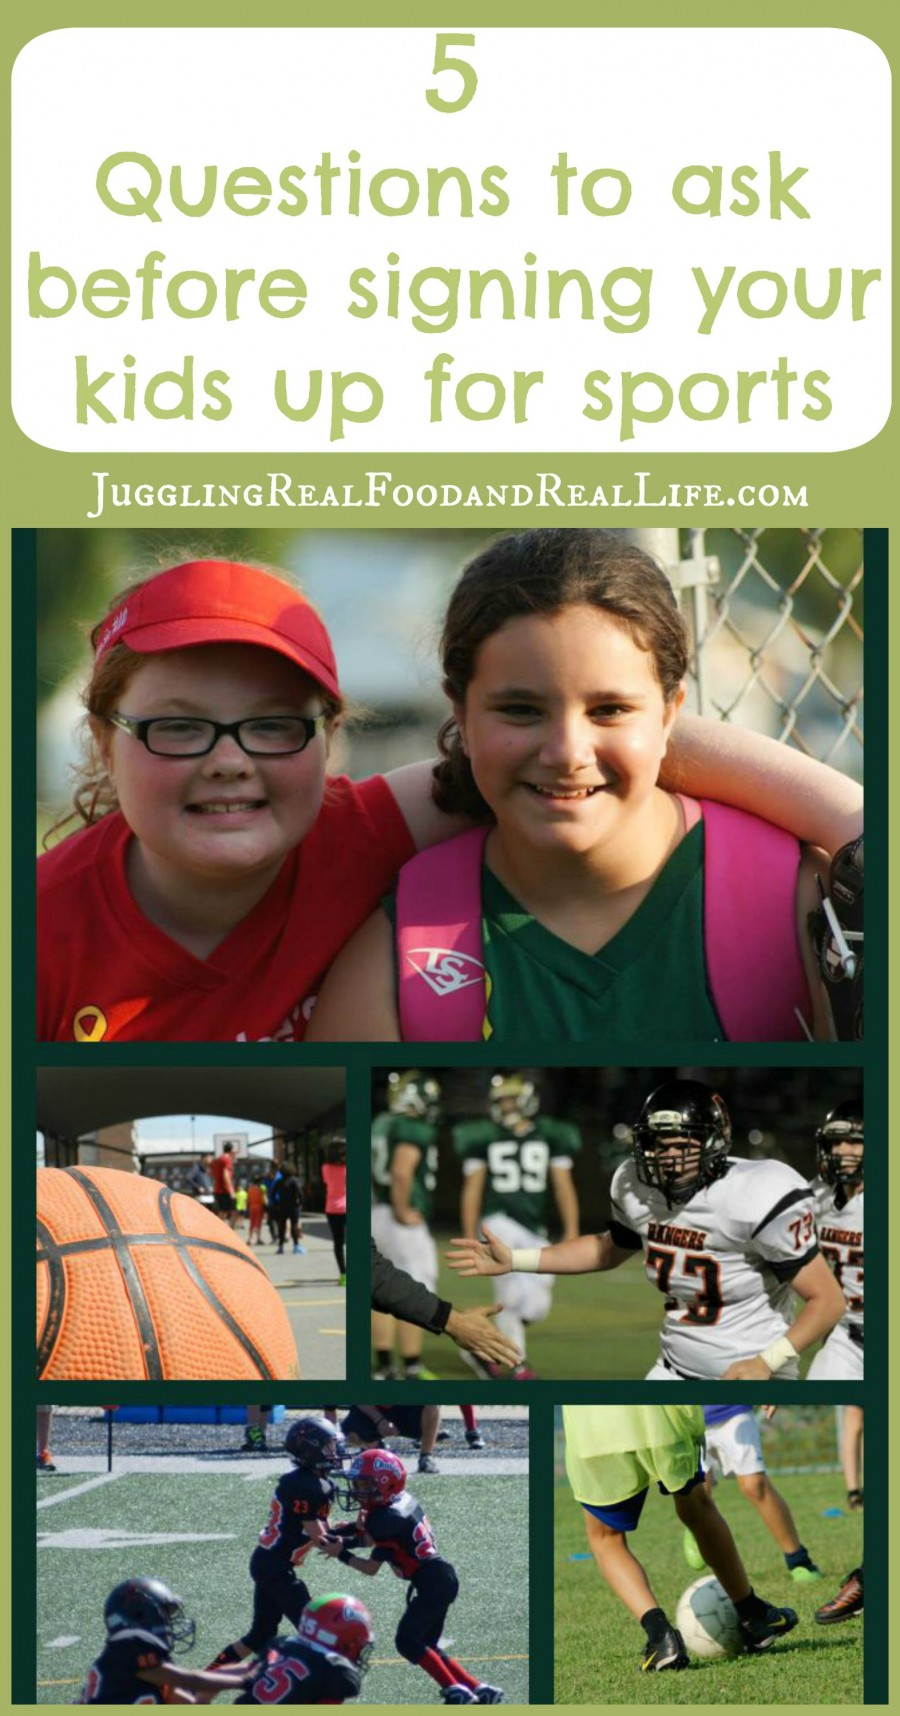 Youth Sports: 5 Questions to Ask Before Signing Your Kids Up for Sports